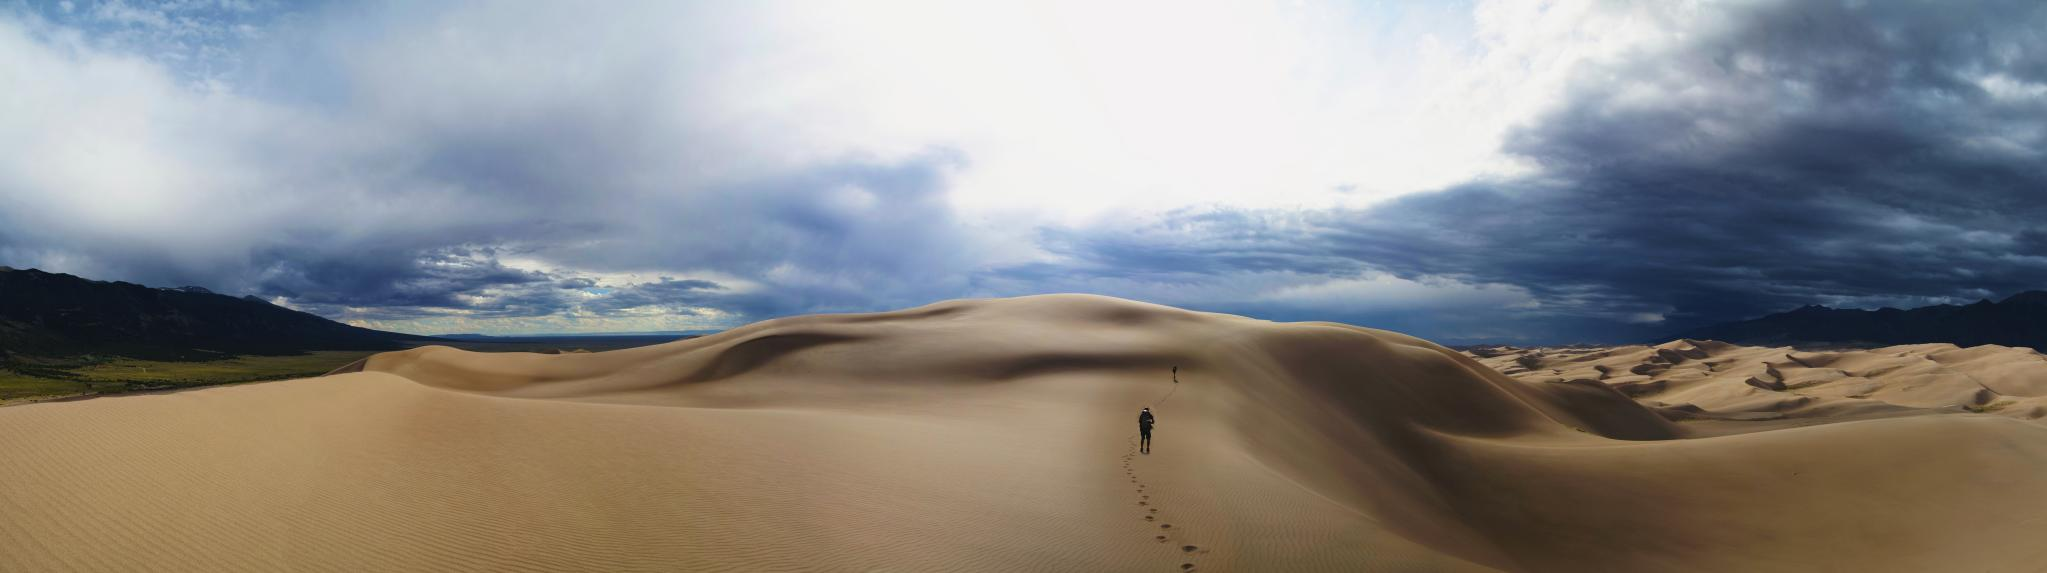 Colorados Great Sand Dunes